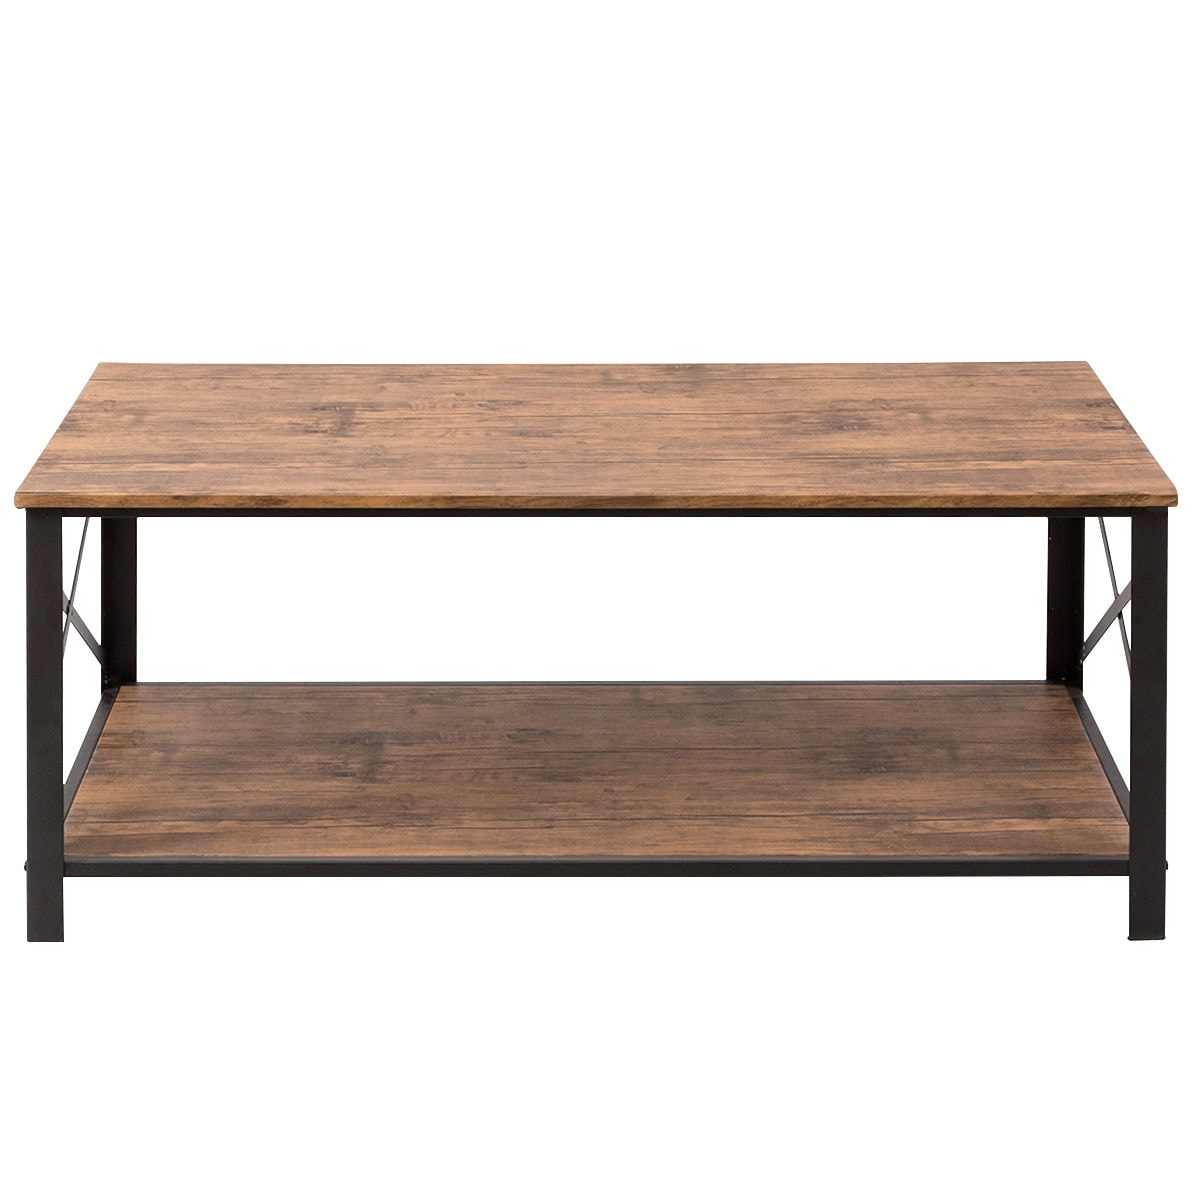 Costway Wood Coffee Table Tail Side Accent Metal Frame W Storage Shelf Free Shipping Today 17950514